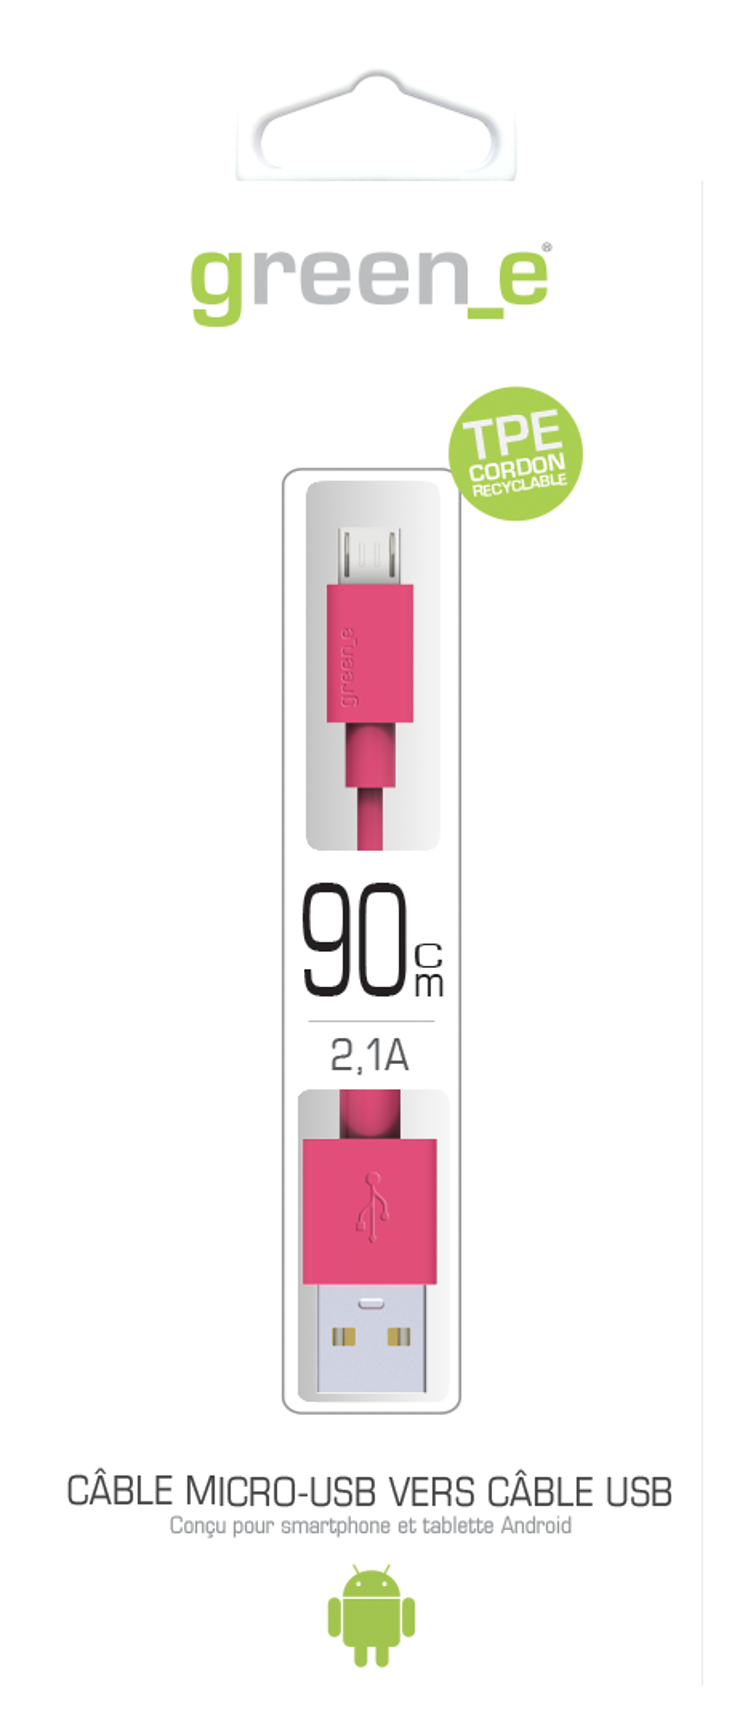 CORDON MICRO USB TPE 2,1A ROSE 90 CM gr1007-packinghd